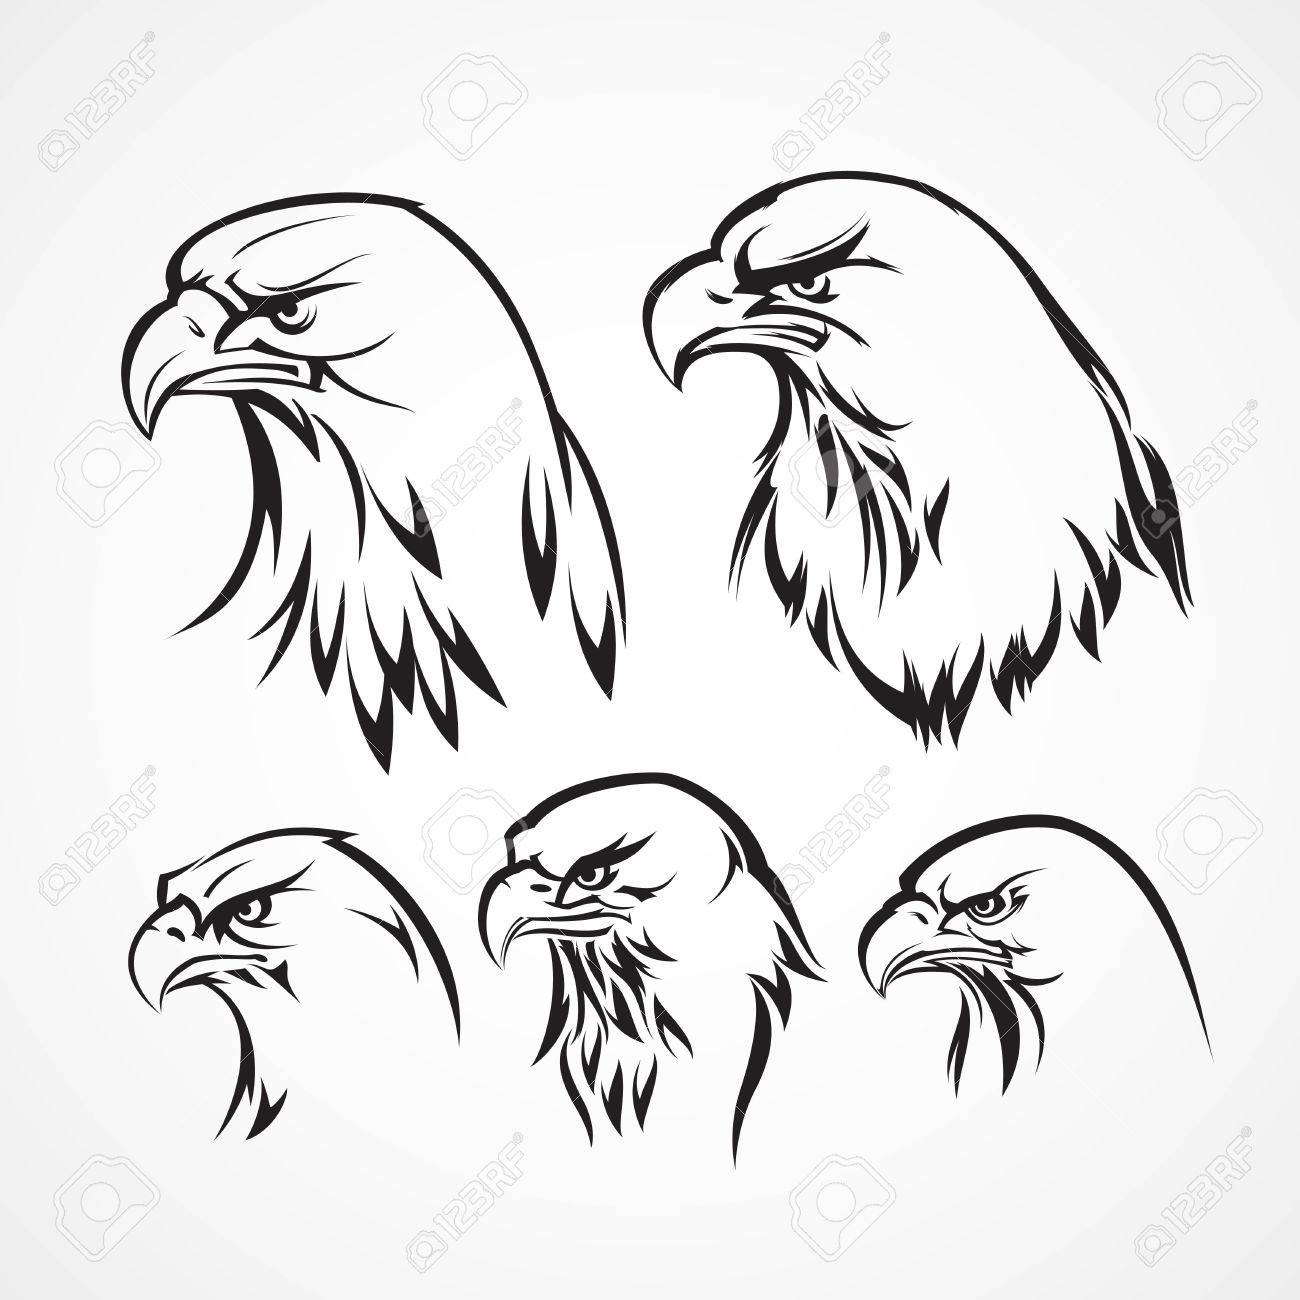 Eagle Badge Template. Silhouette. Vector Illustration Royalty Free ...